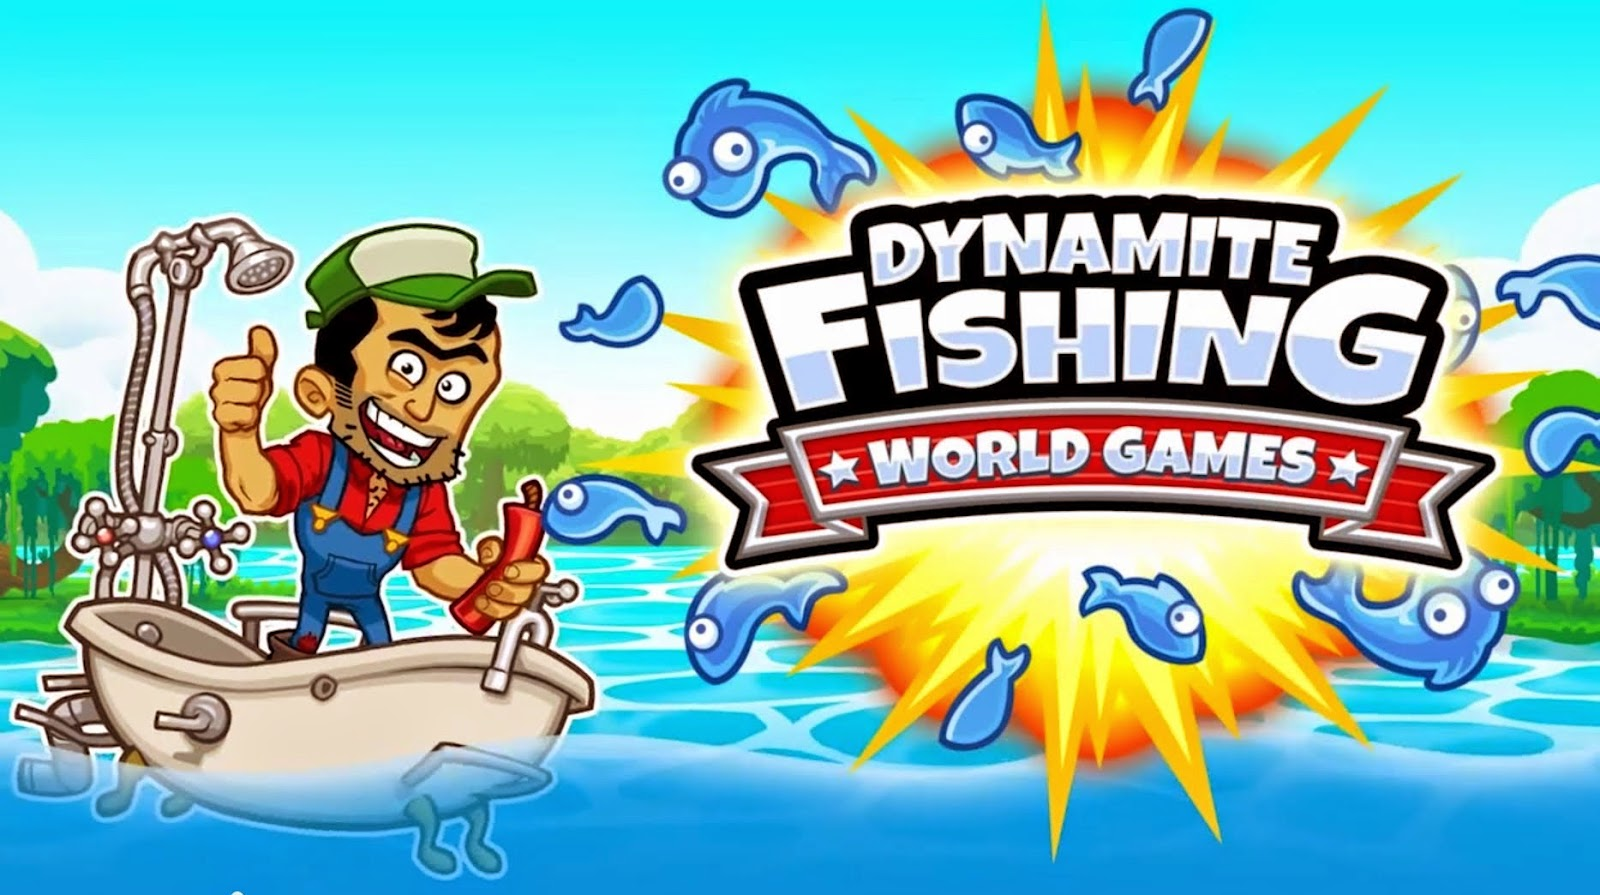 Dynamite Fishing v1.1.3 MOD APK + DATA ~ Custom Droid Rom